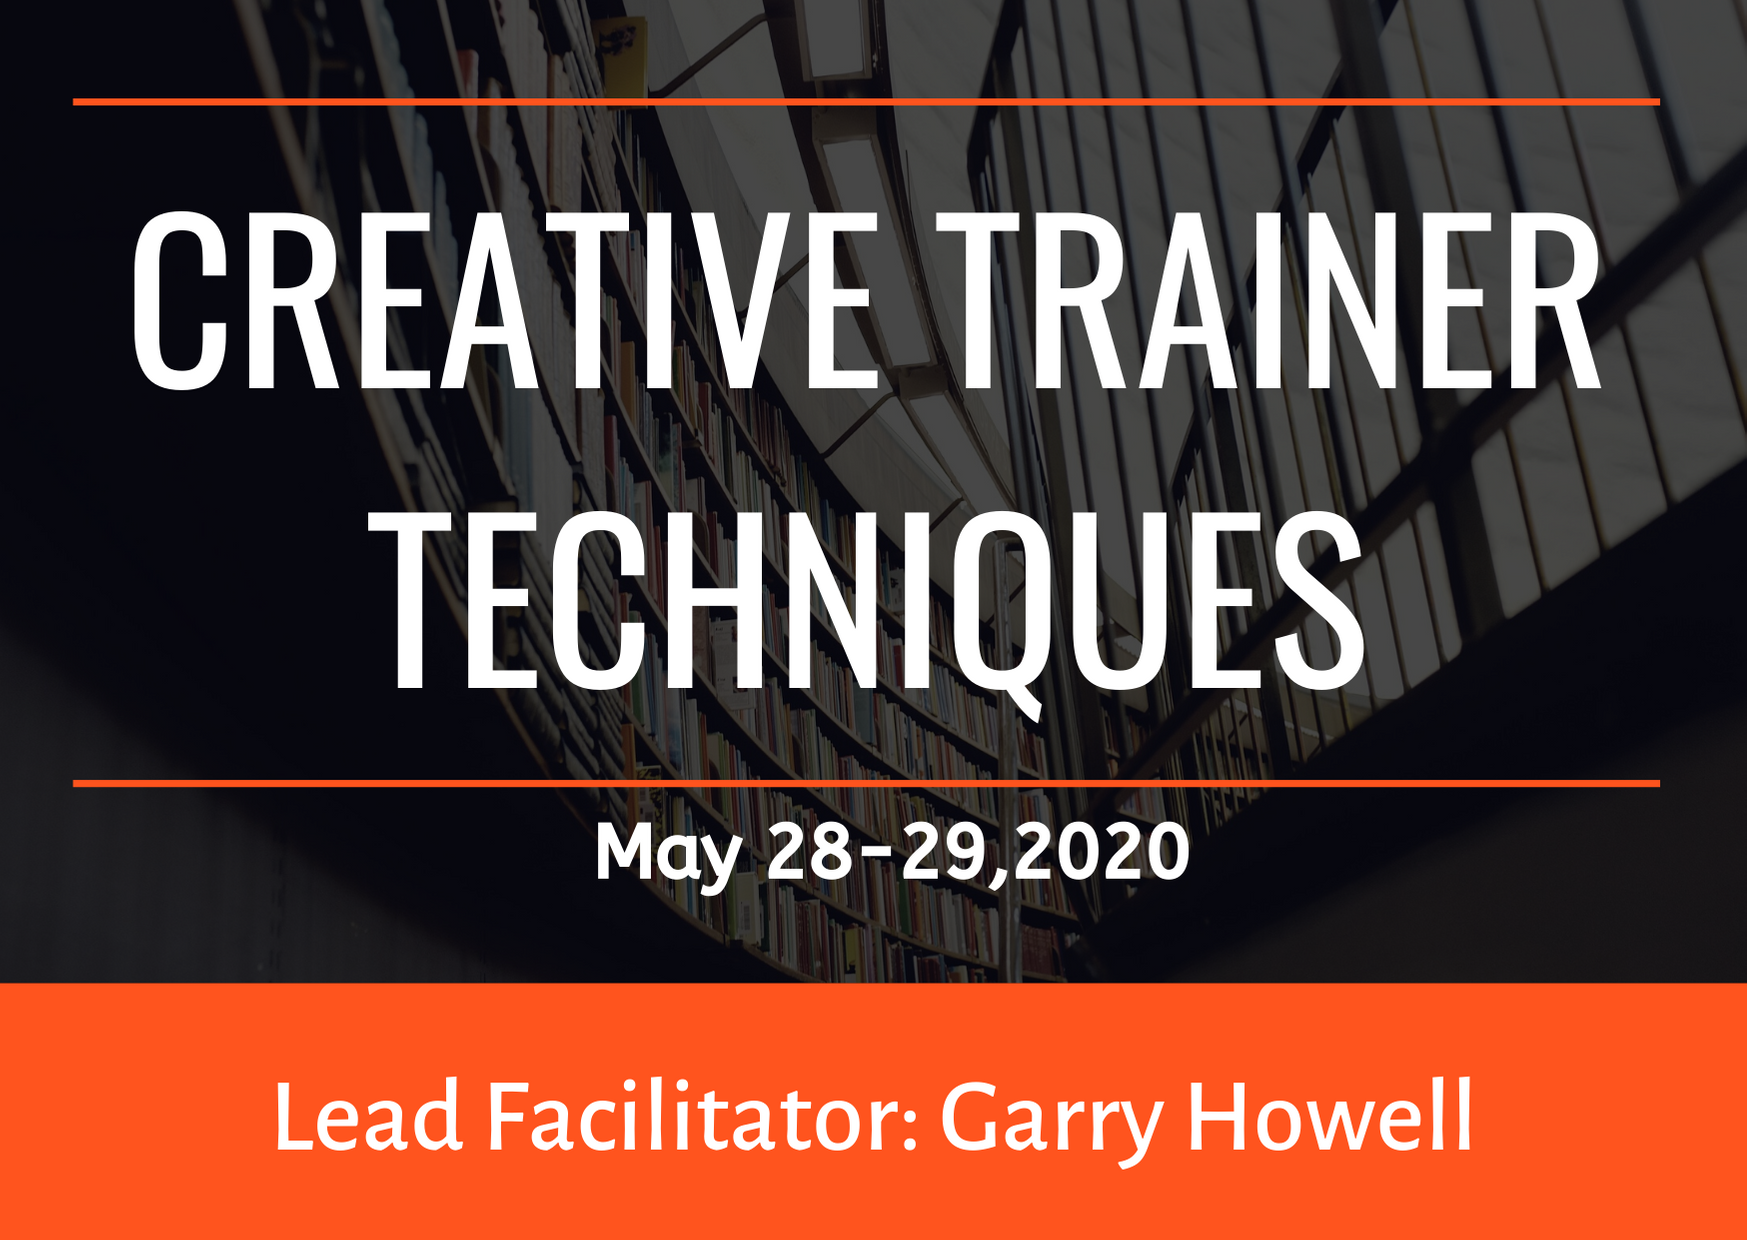 Upcoming Event - Creative Trainer Techniques